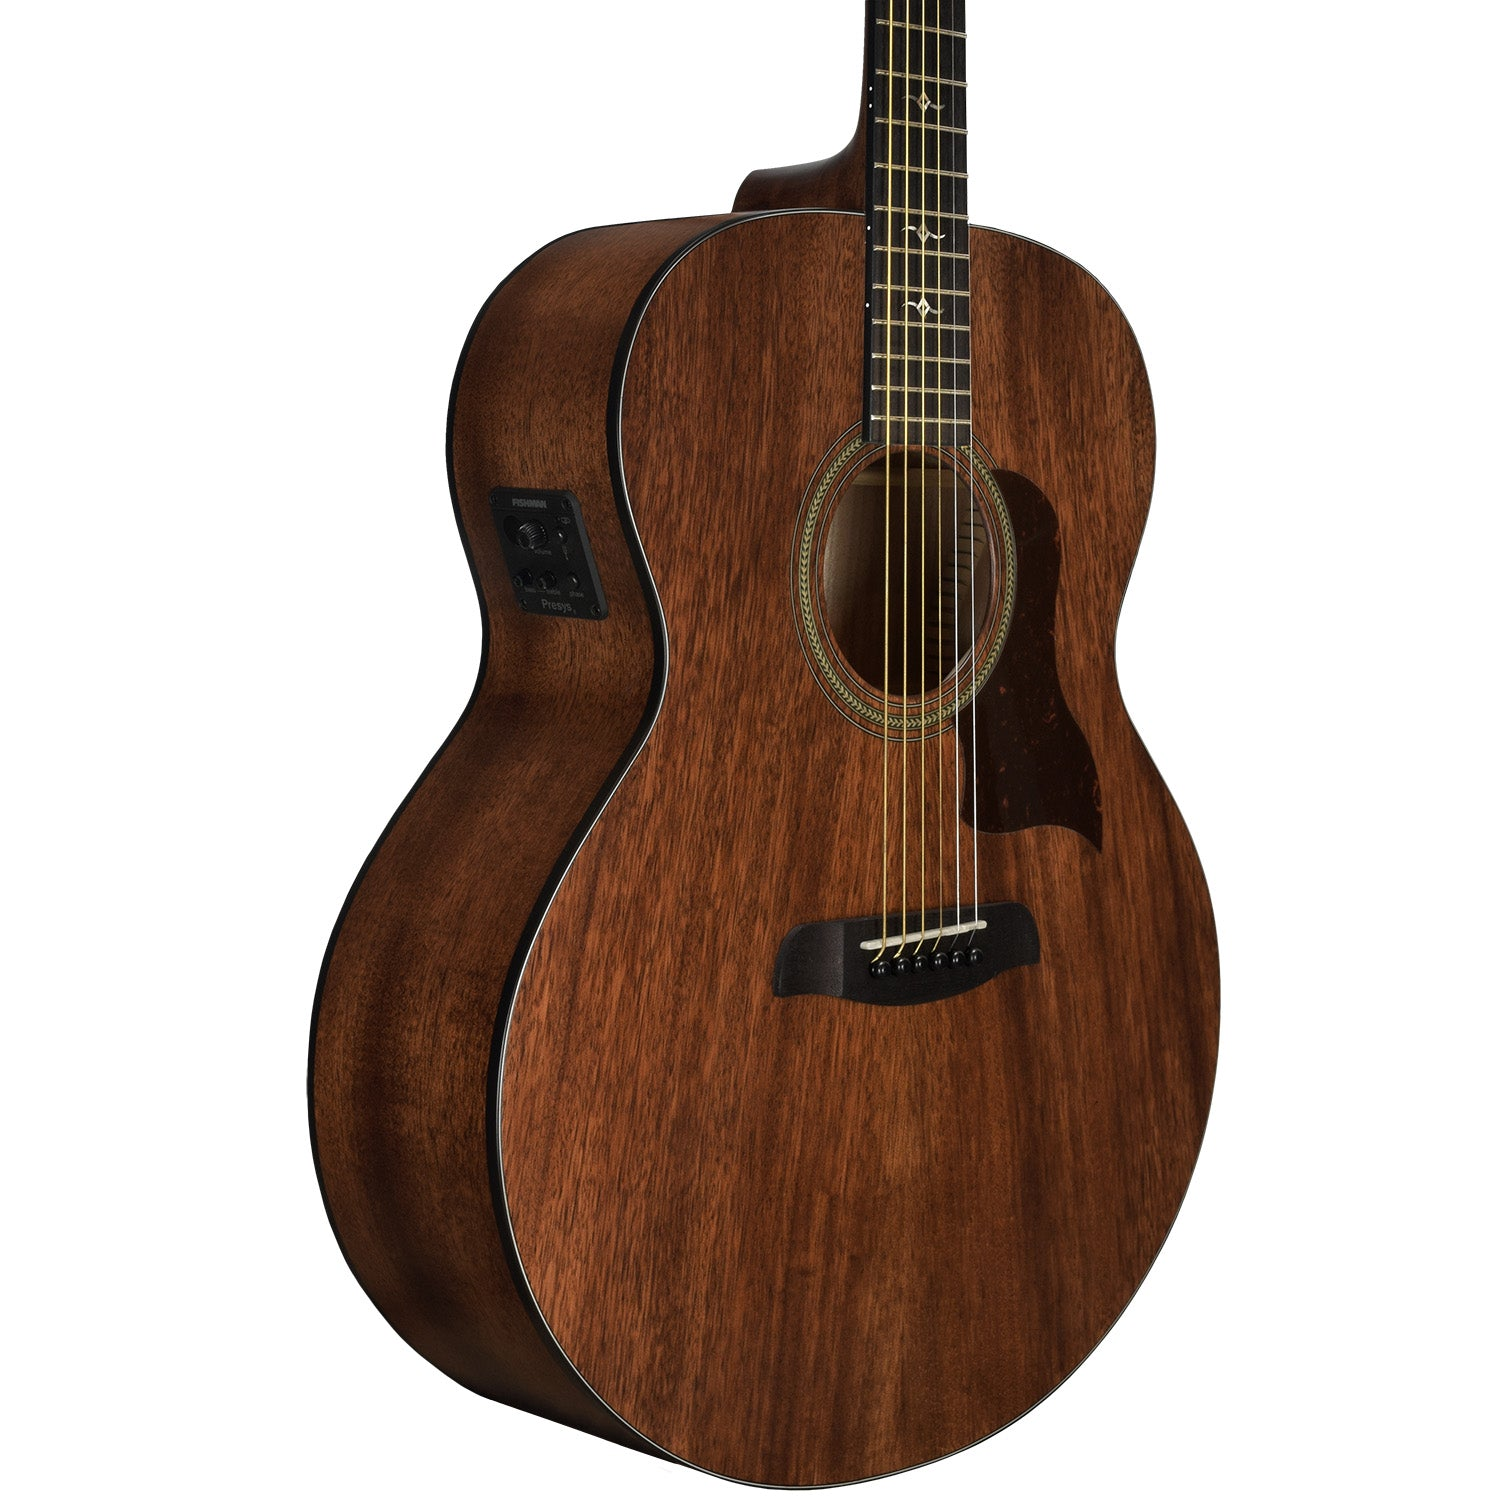 sawtooth mahogany series jumbo acoustic electric guitar with chromacas godpsmusic. Black Bedroom Furniture Sets. Home Design Ideas